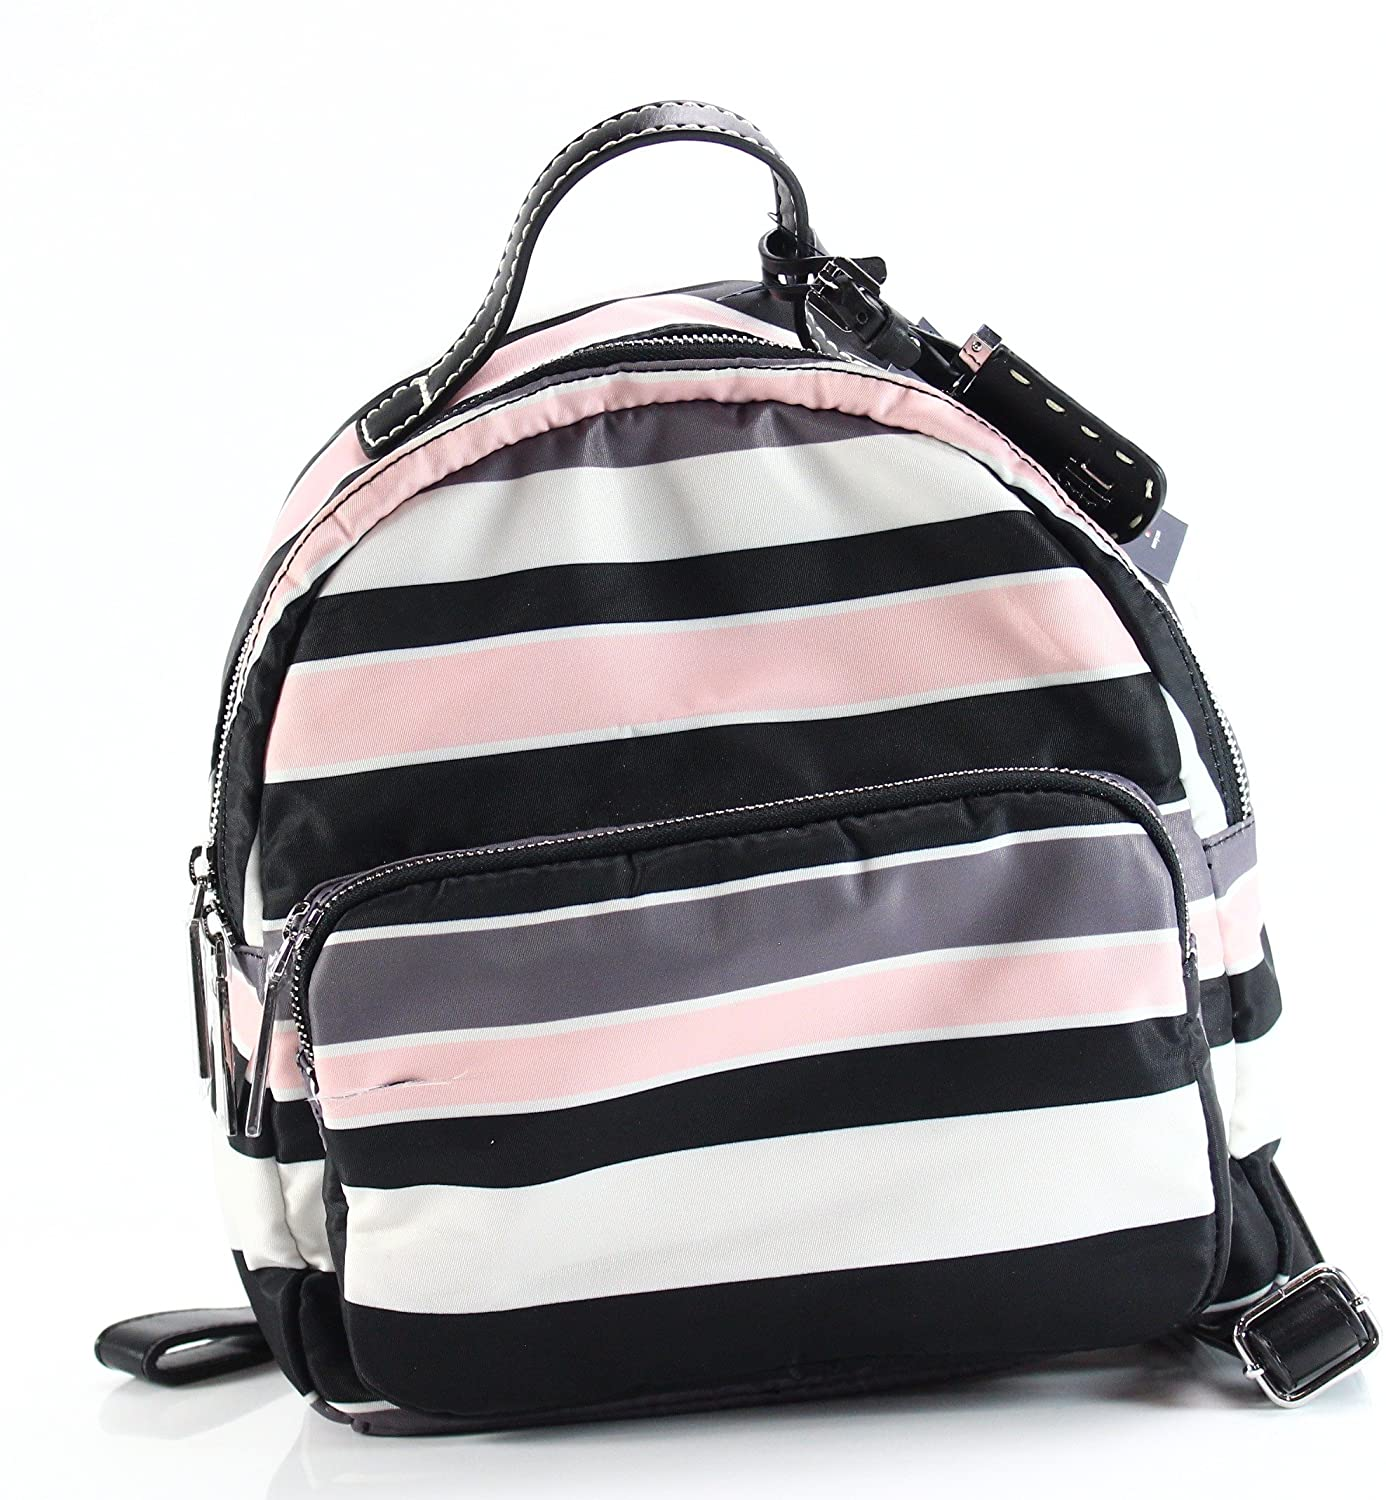 Tommy Hilfiger Julia Dome Backpack Nylon Victory Stripe Black/Pink One Size